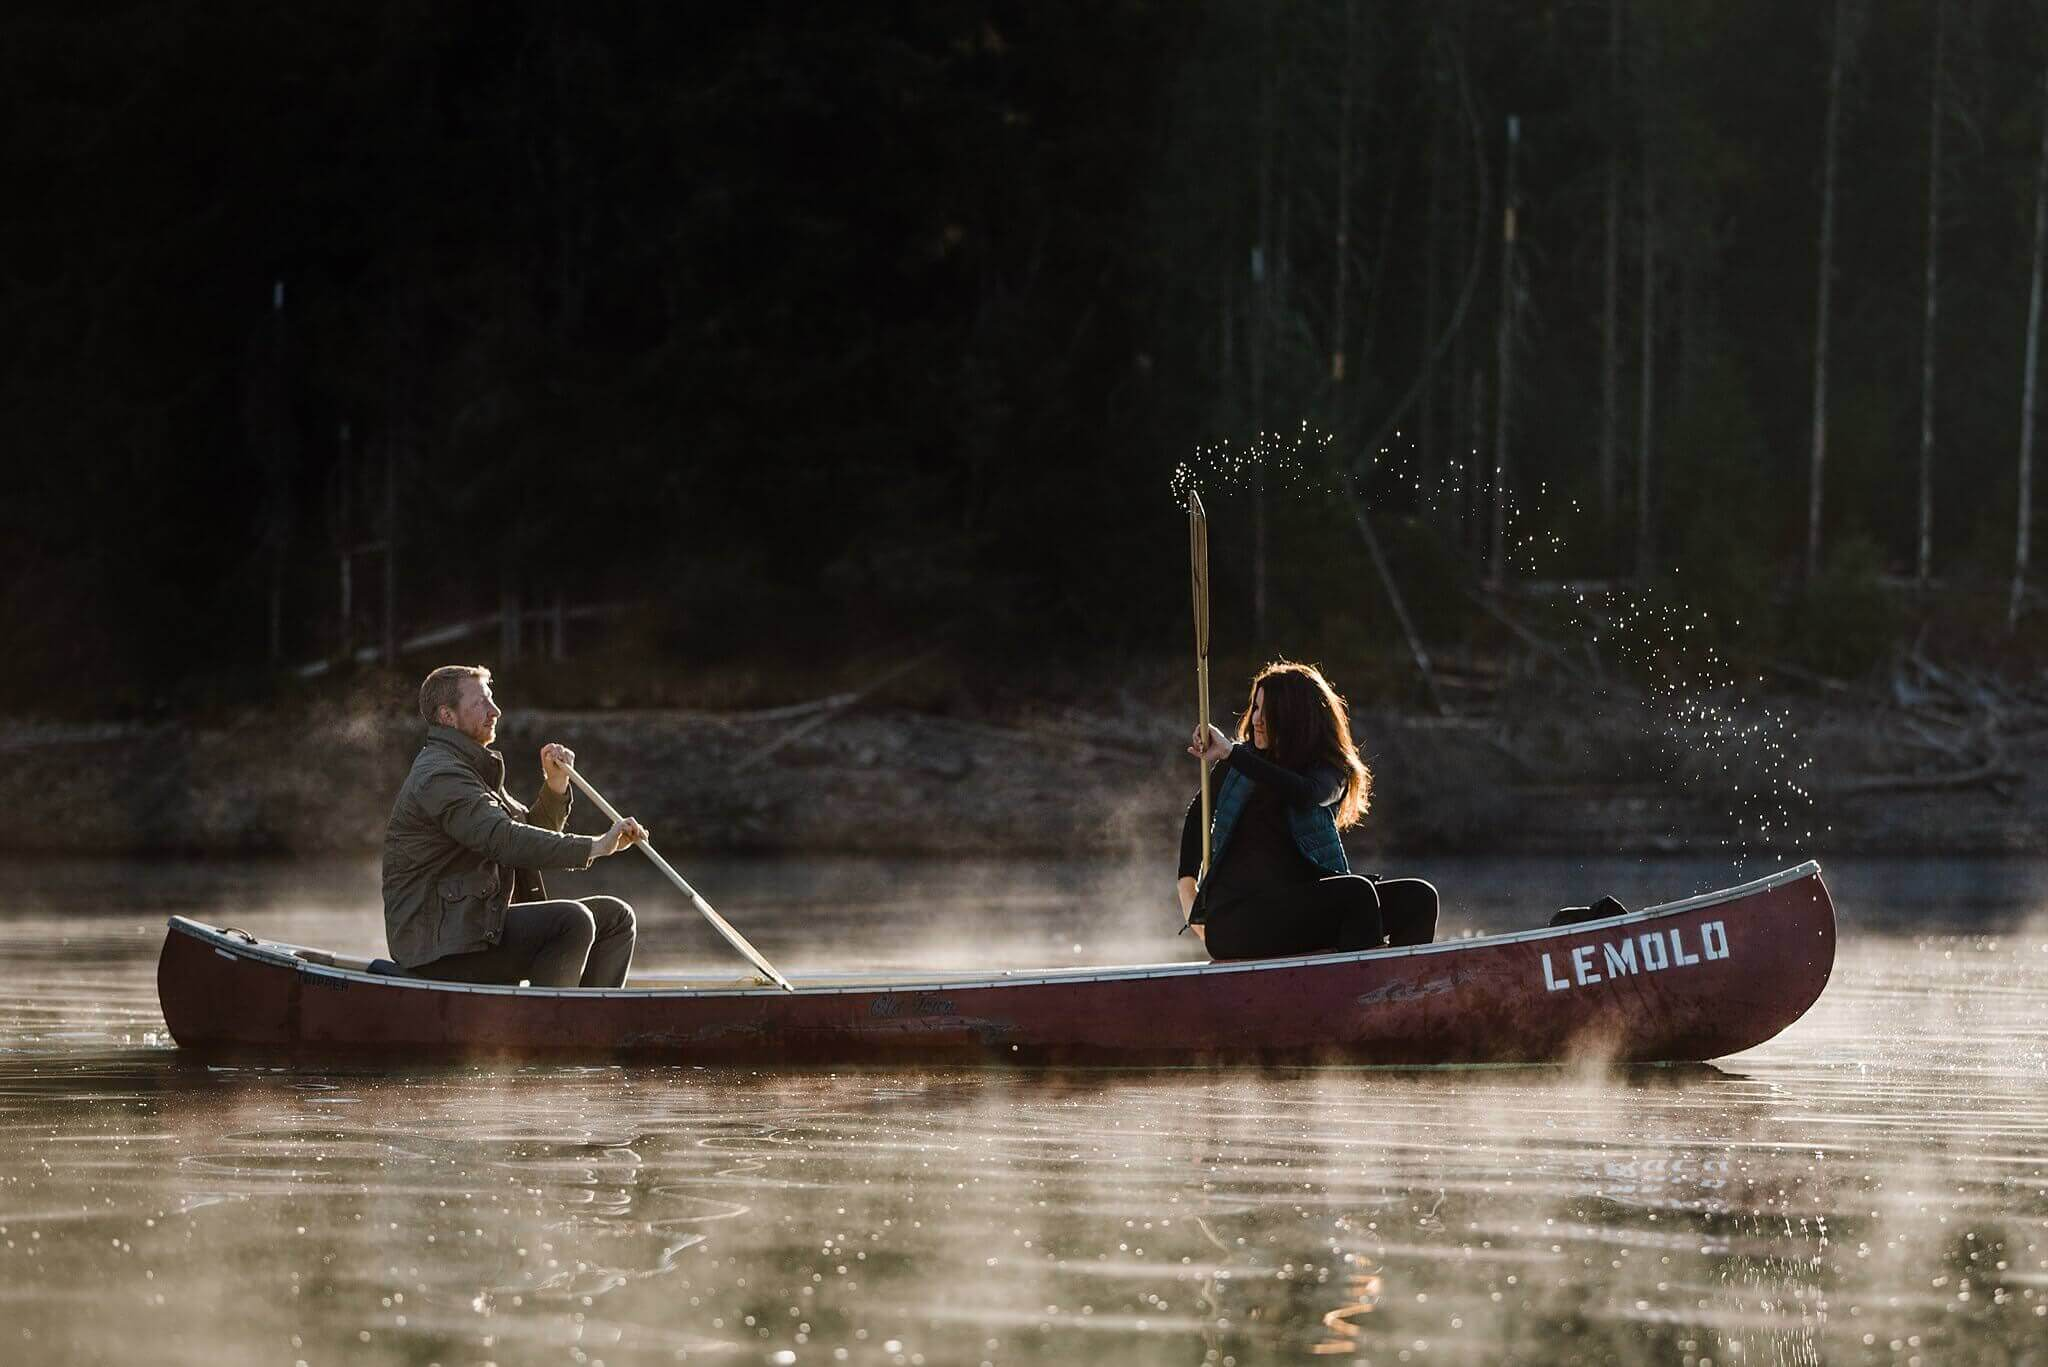 Canoe-Lake-Adventure-Engagement-Session-Oregon-Lemolo-S-Photography_0008.jpg